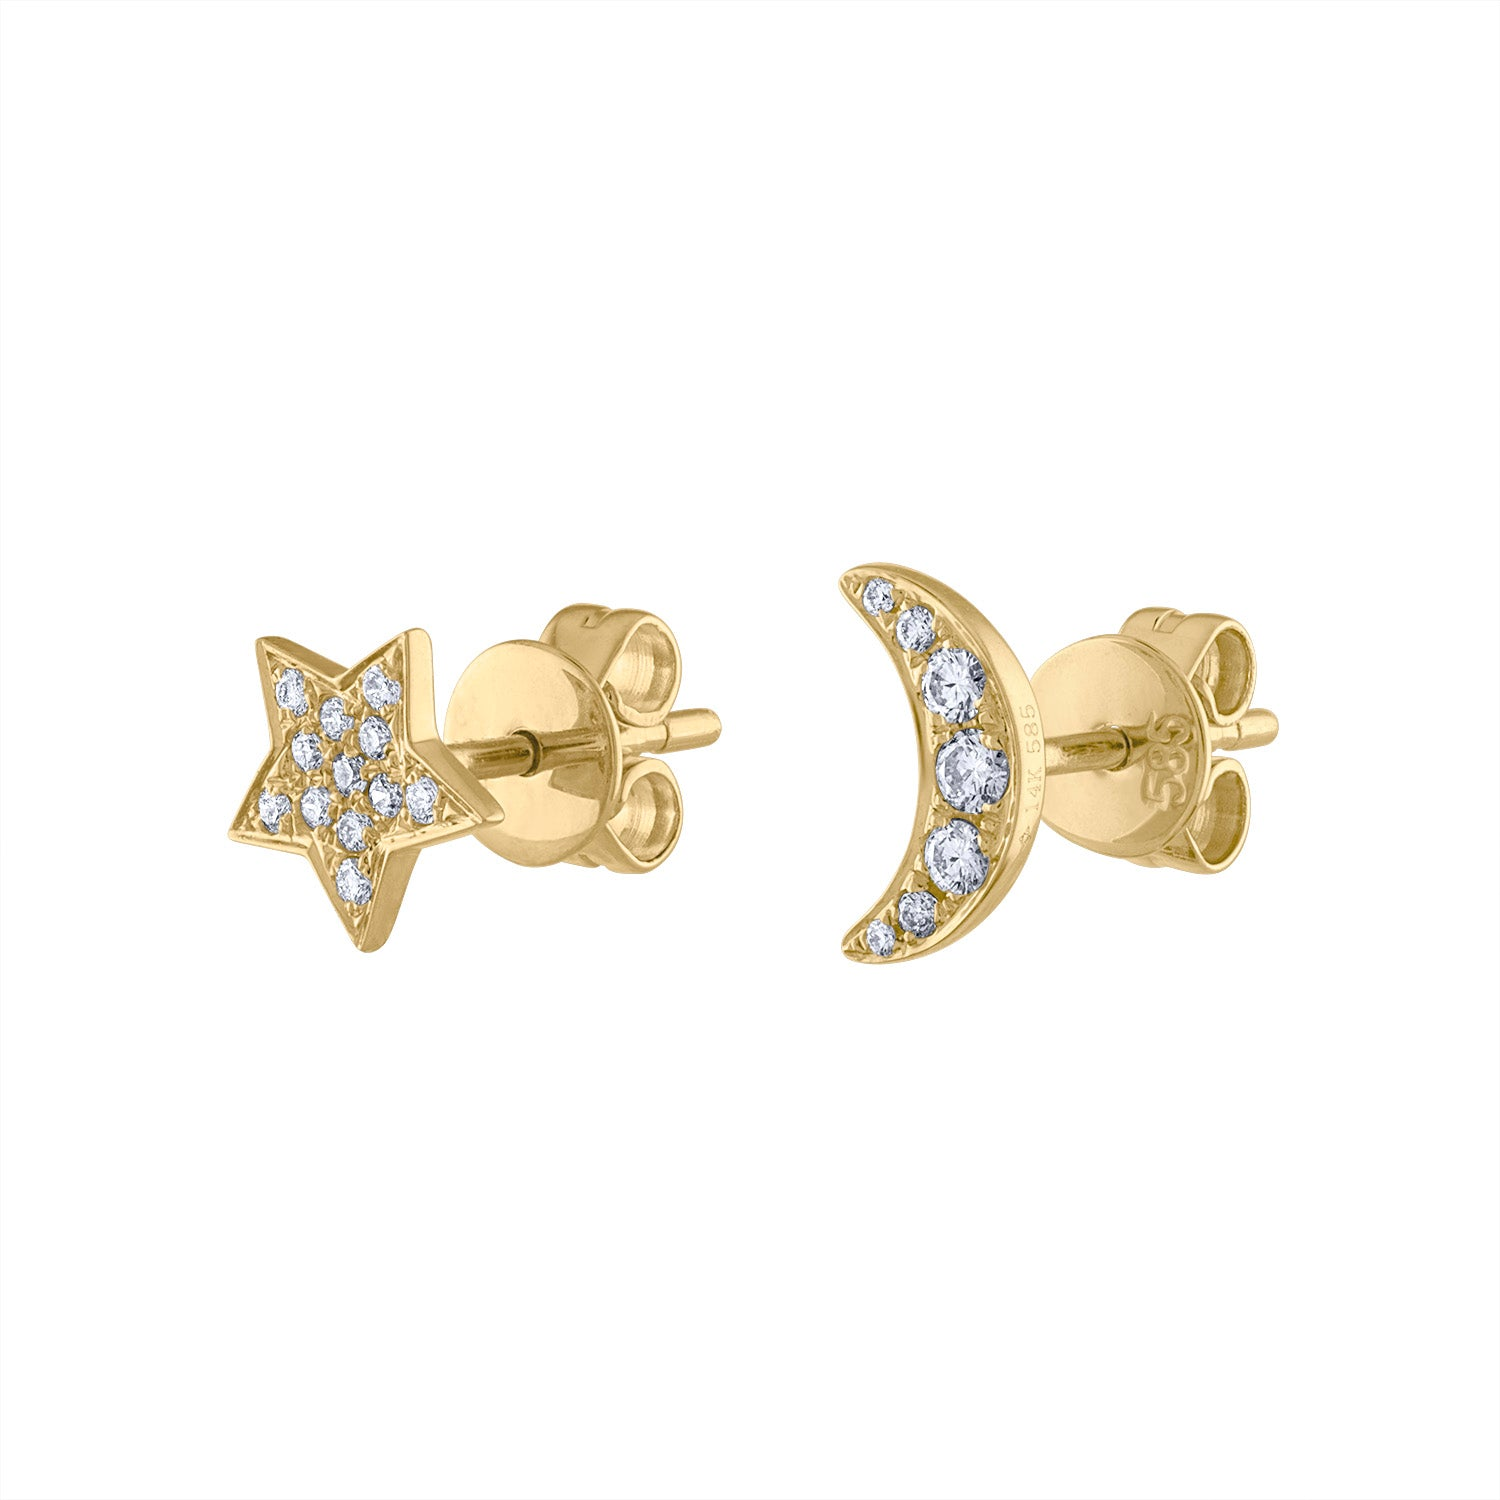 14KT GOLD DIAMOND MOON AND STAR EARRING